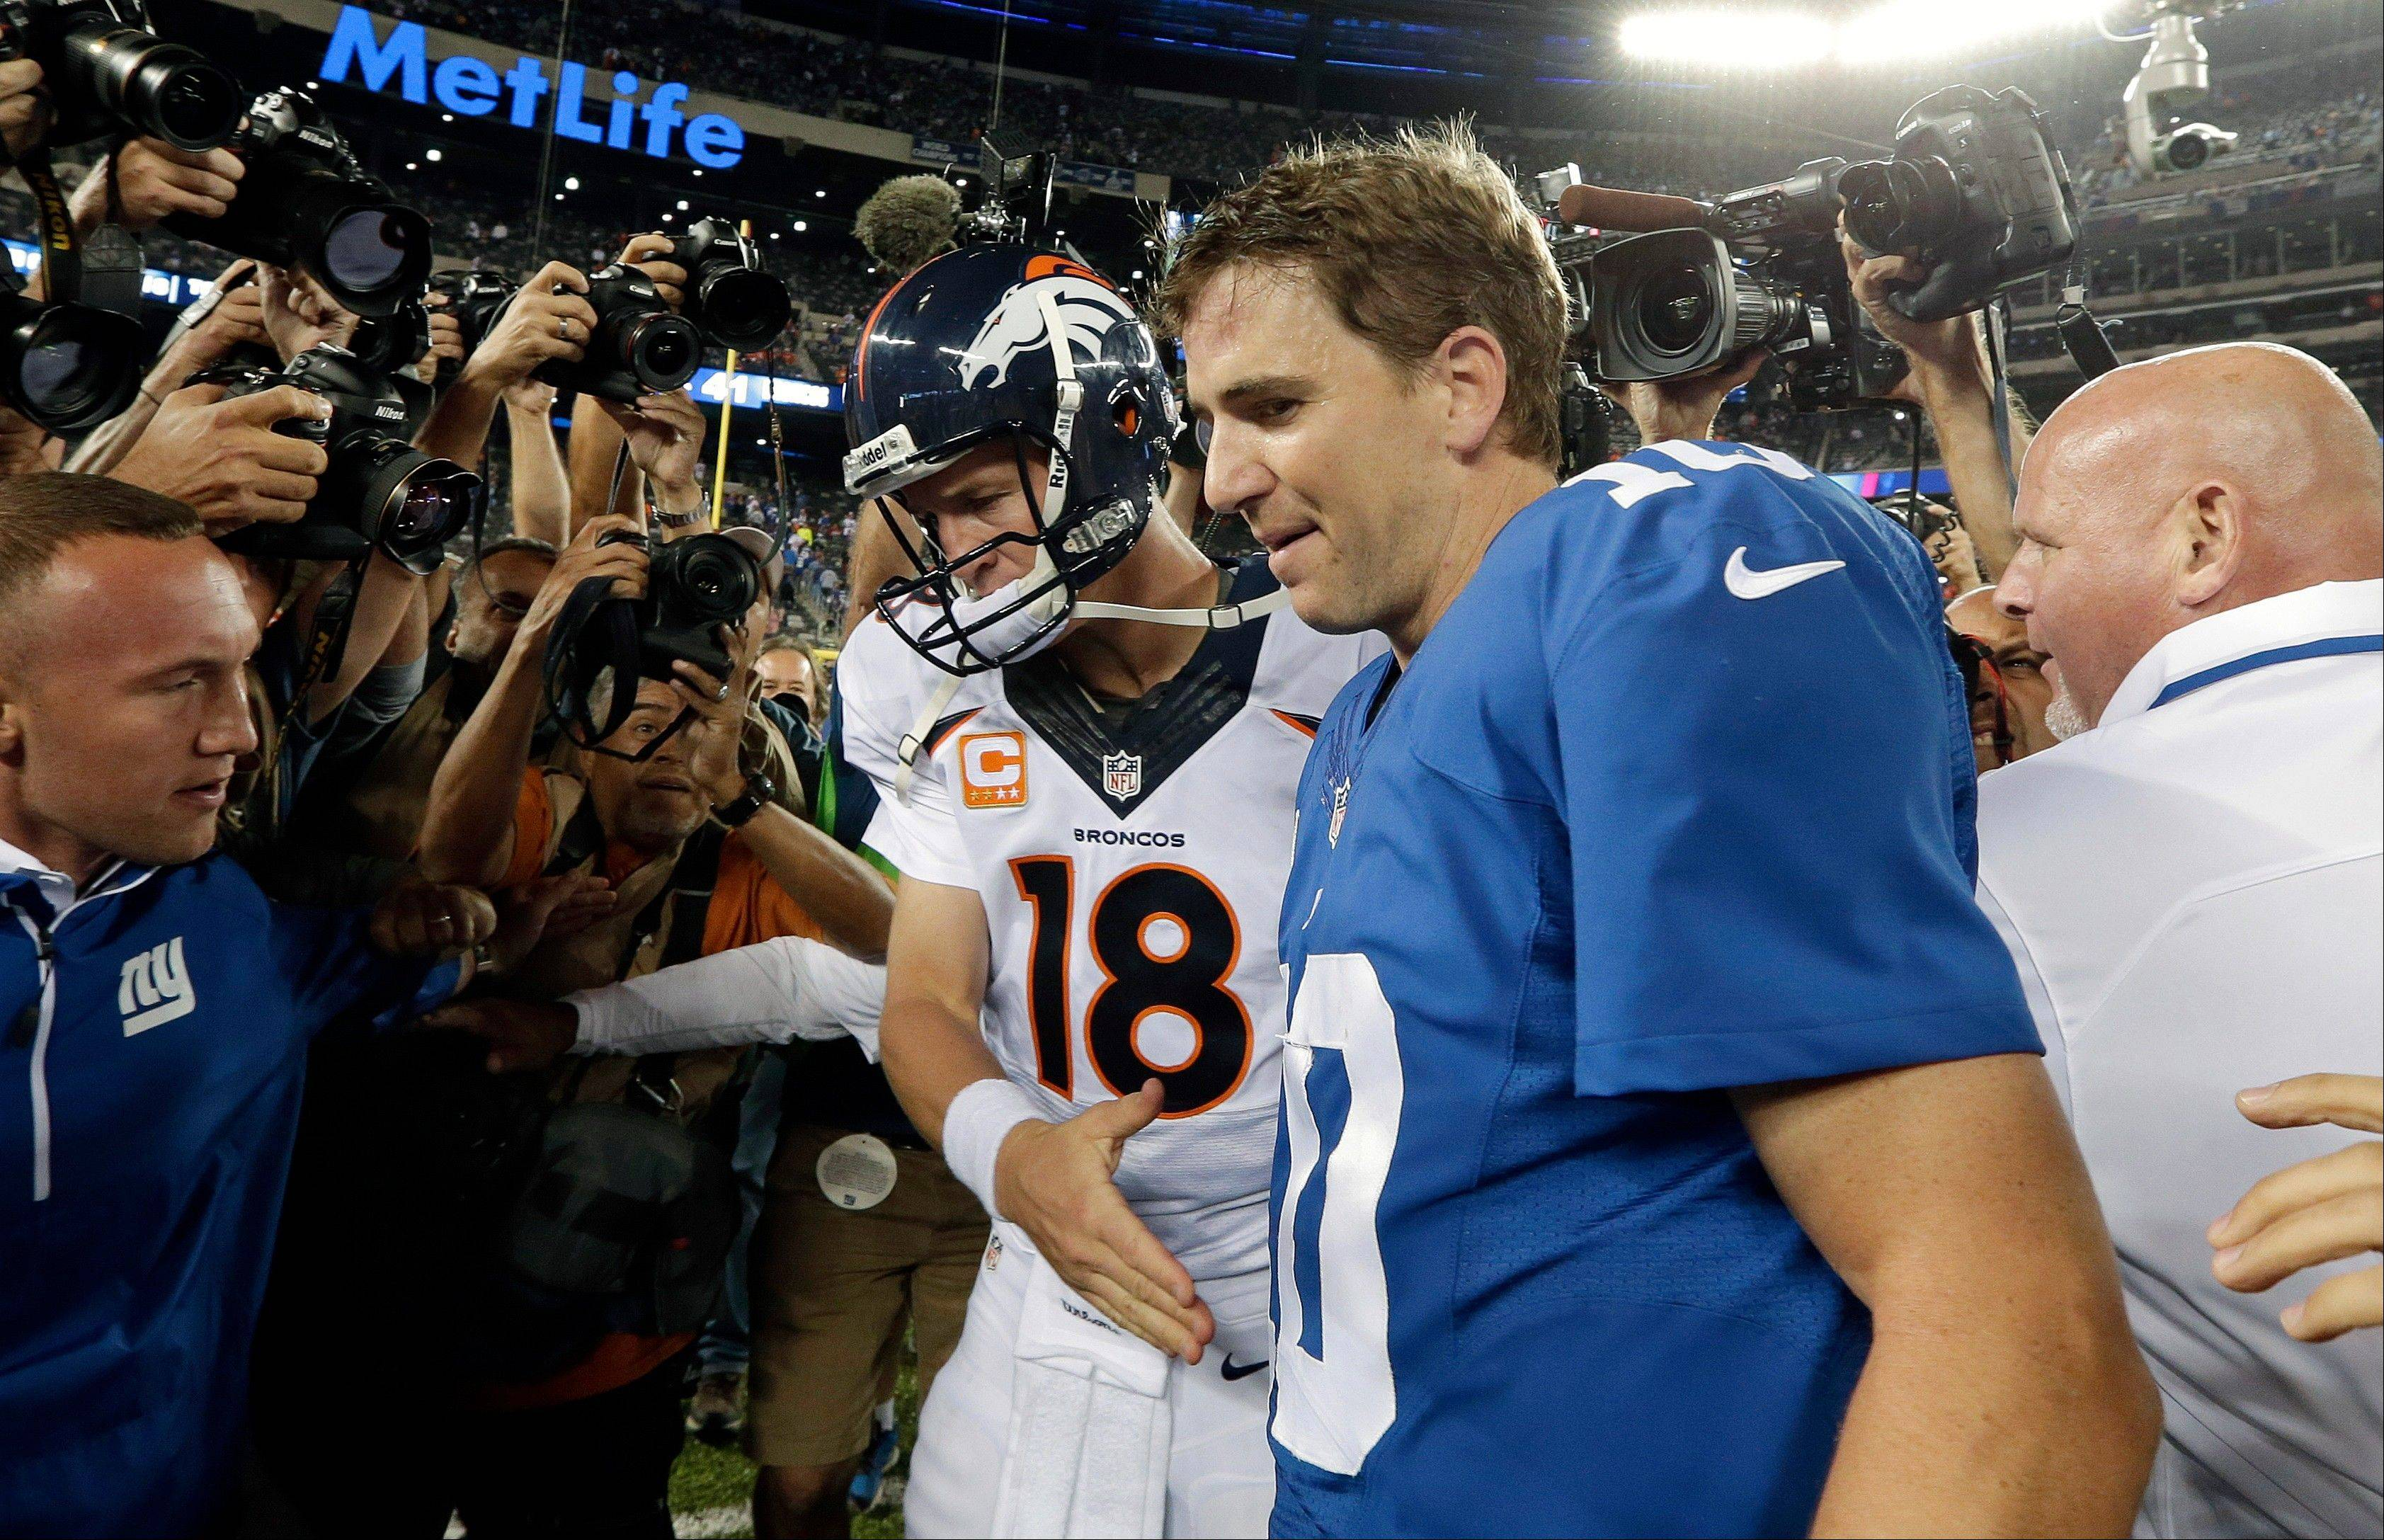 Denver Broncos quarterback Peyton Manning (18) shakes hands with his brother New York Giants� quarterback Eli Manning (10) after an NFL football game Sunday, Sept. 15, 2013, in East Rutherford, N.J. The Broncos won the game 41-23.